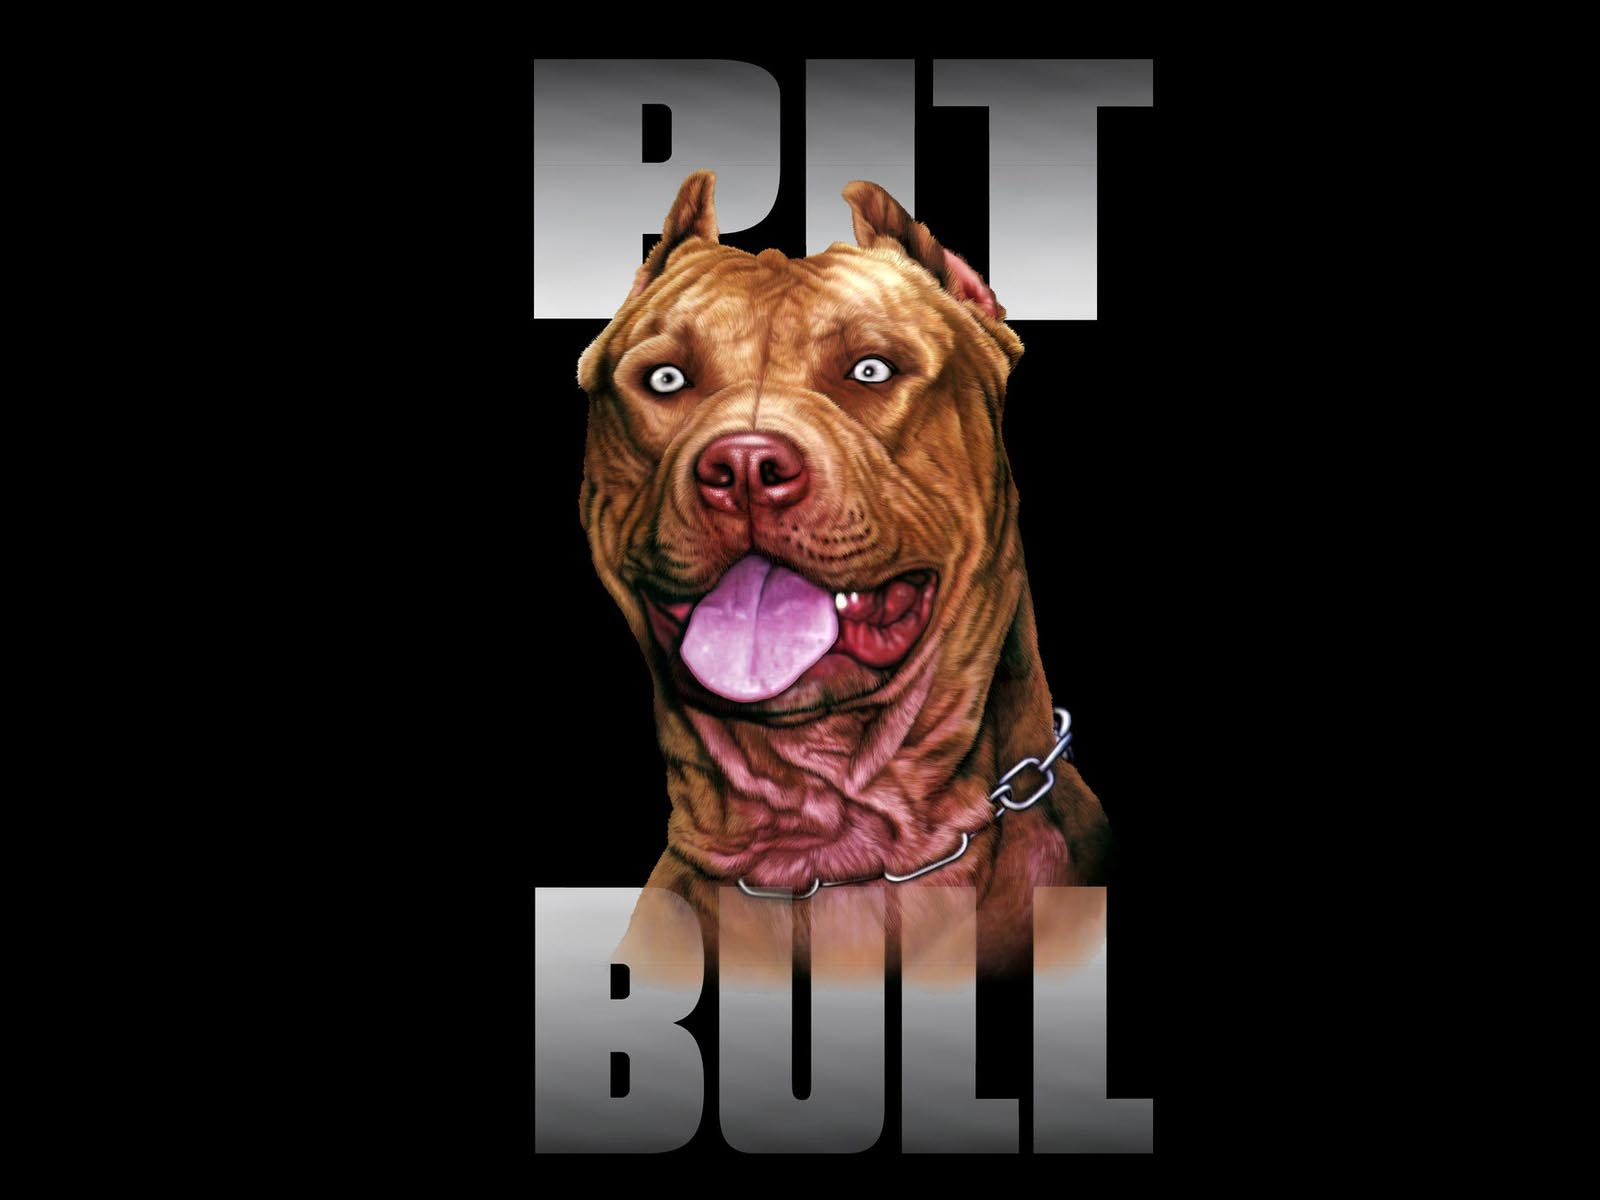 Pit Bull Dog Breed Wallpapers 1600x1200PX ~ American Pit Bull